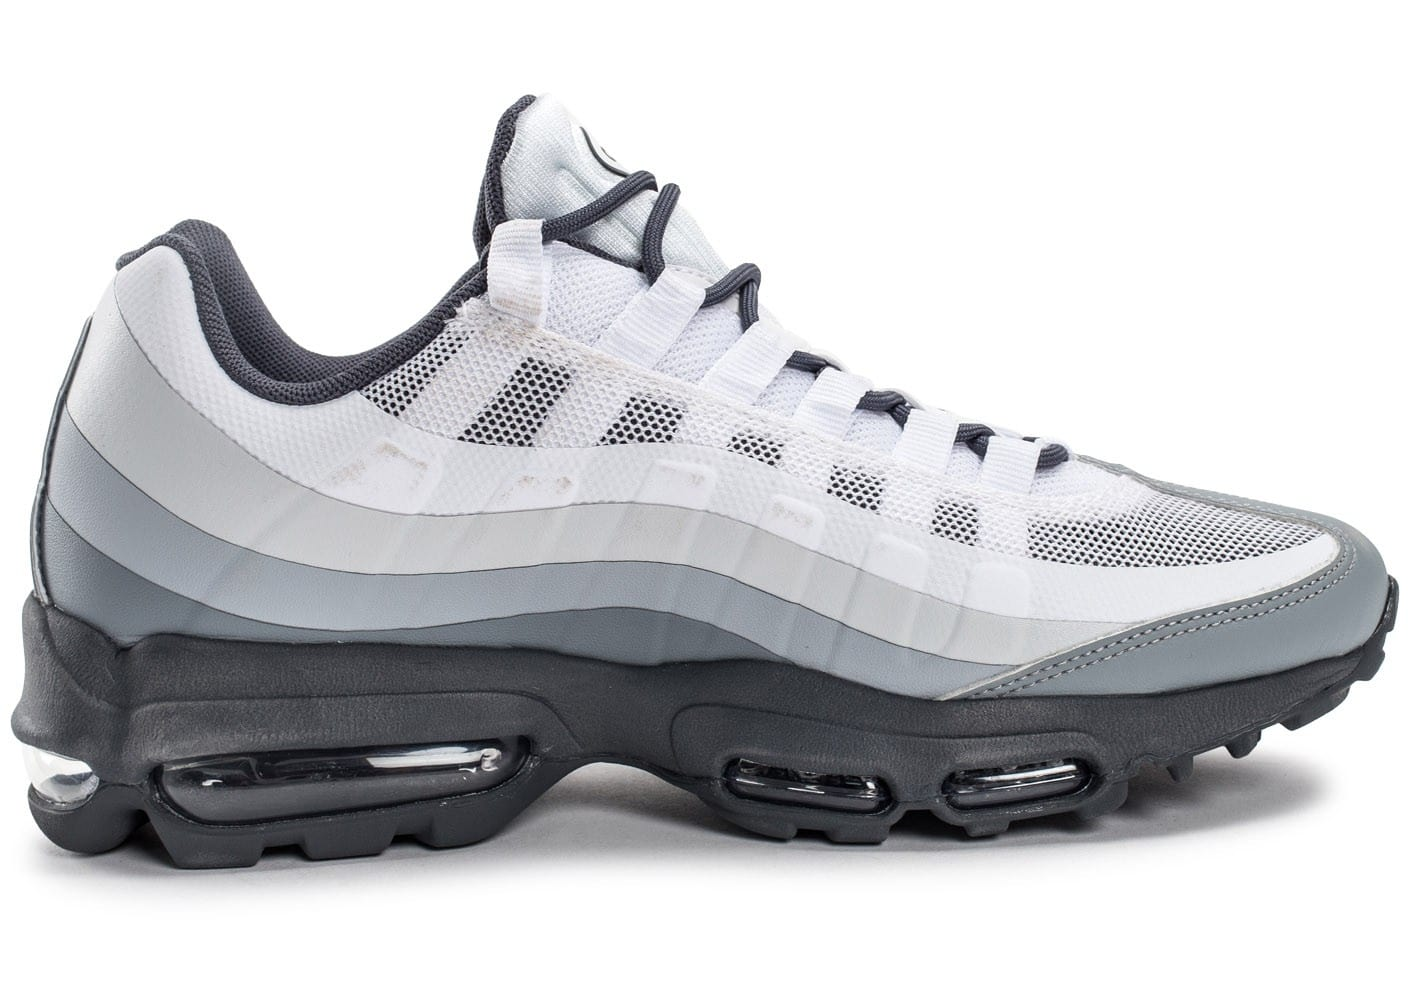 low priced 8163d aa96f chaussures nike air max 95 ultra blanche et grise vue dessous semelle